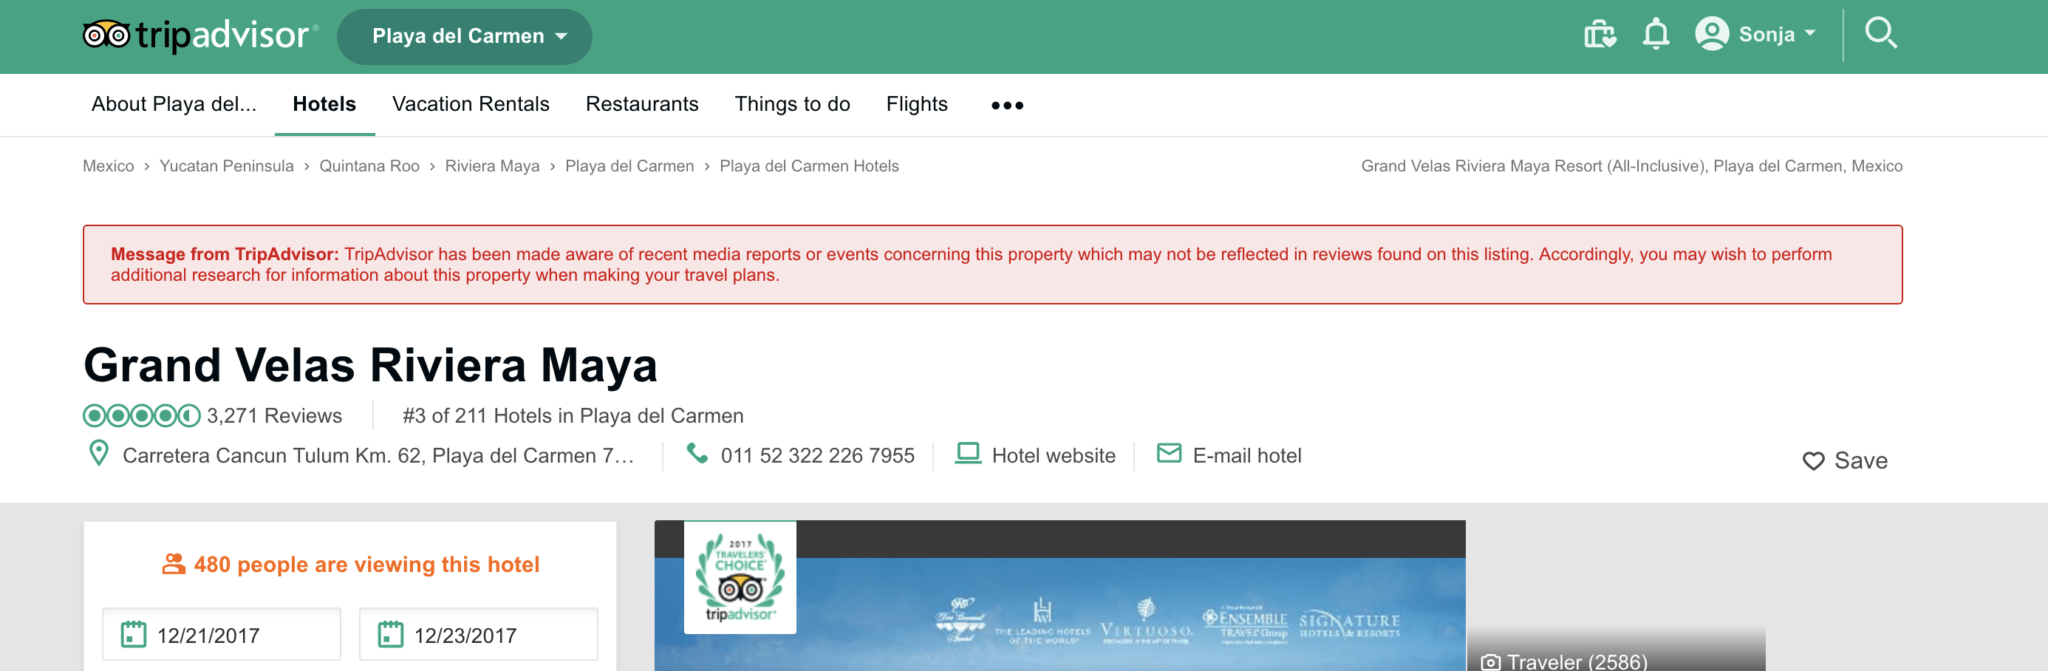 TripAdvisor Adds Warning Signs